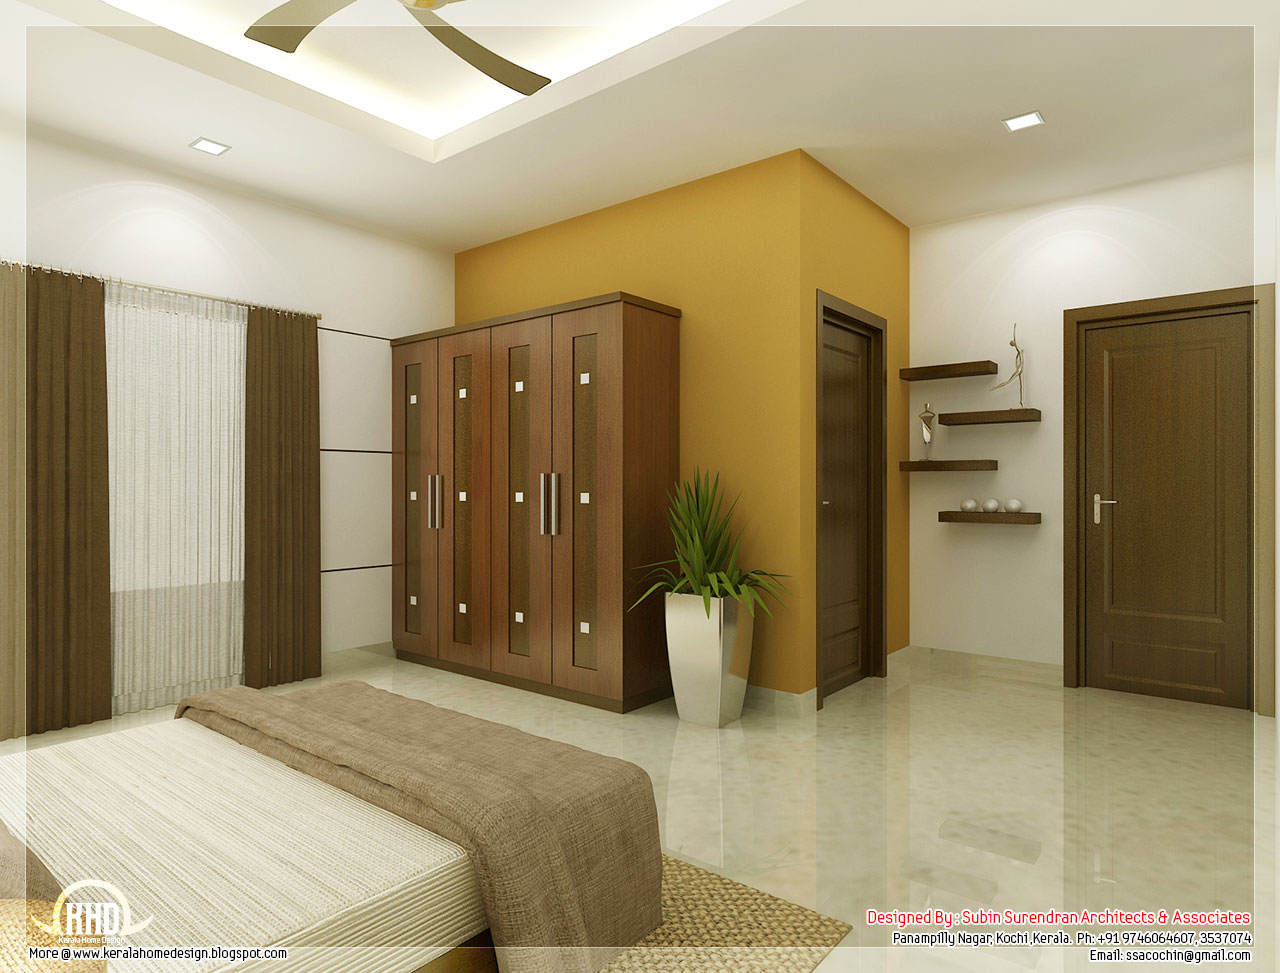 Beautiful bedroom interior designs kerala home design - Interior design for bedroom in india ...